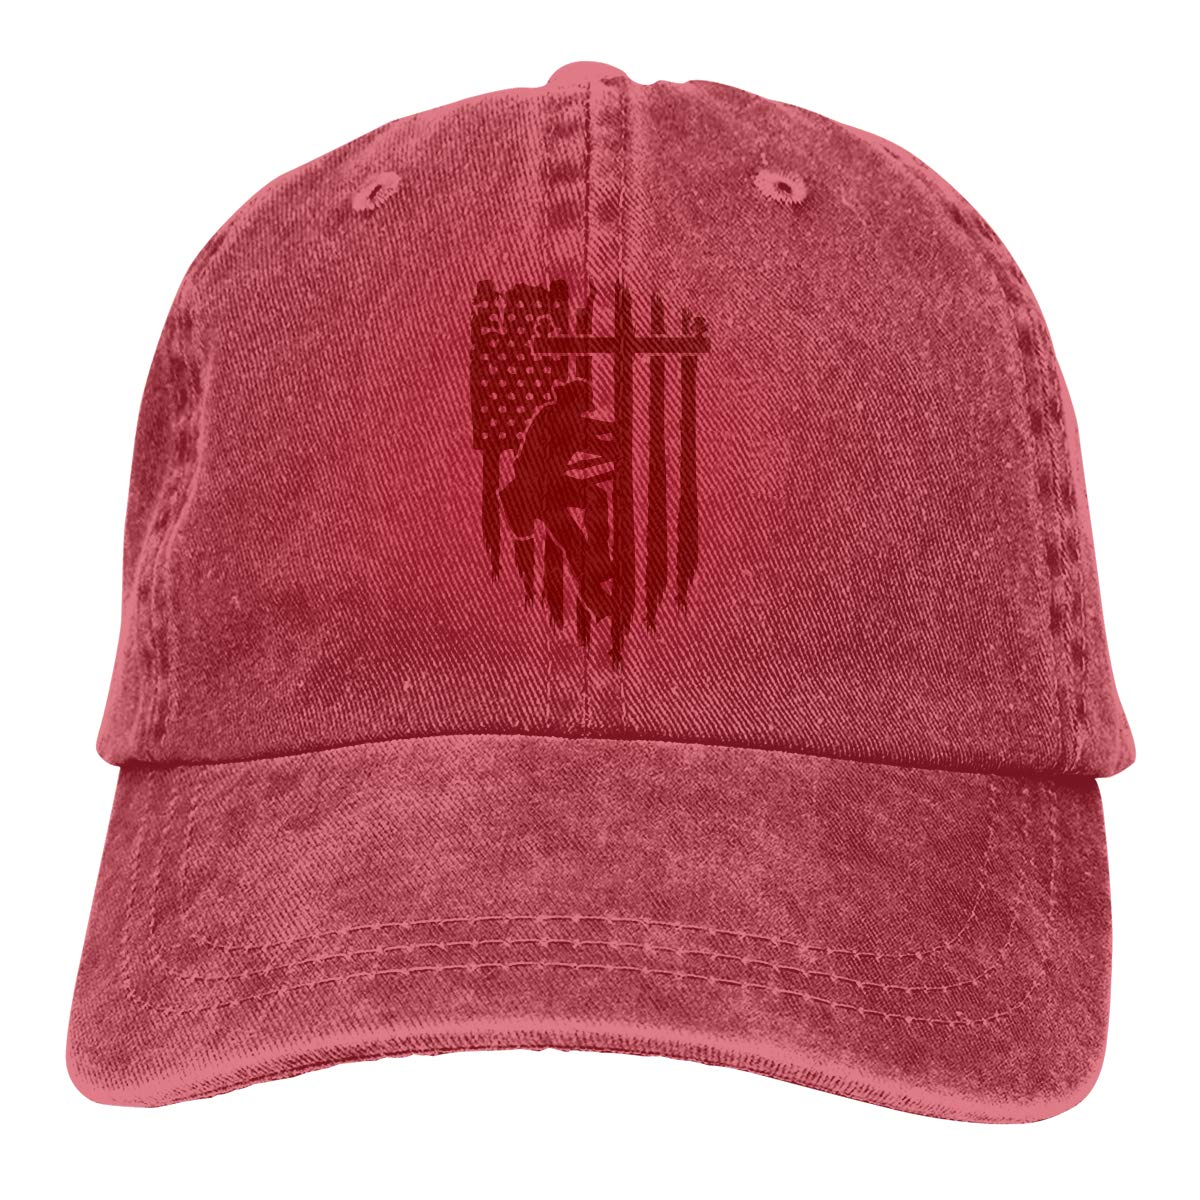 EUYK77 The Cake is a Lie Mens and Womens Trucker Hats Adjustable Hip Hop Flat-Mouthed Baseball Caps